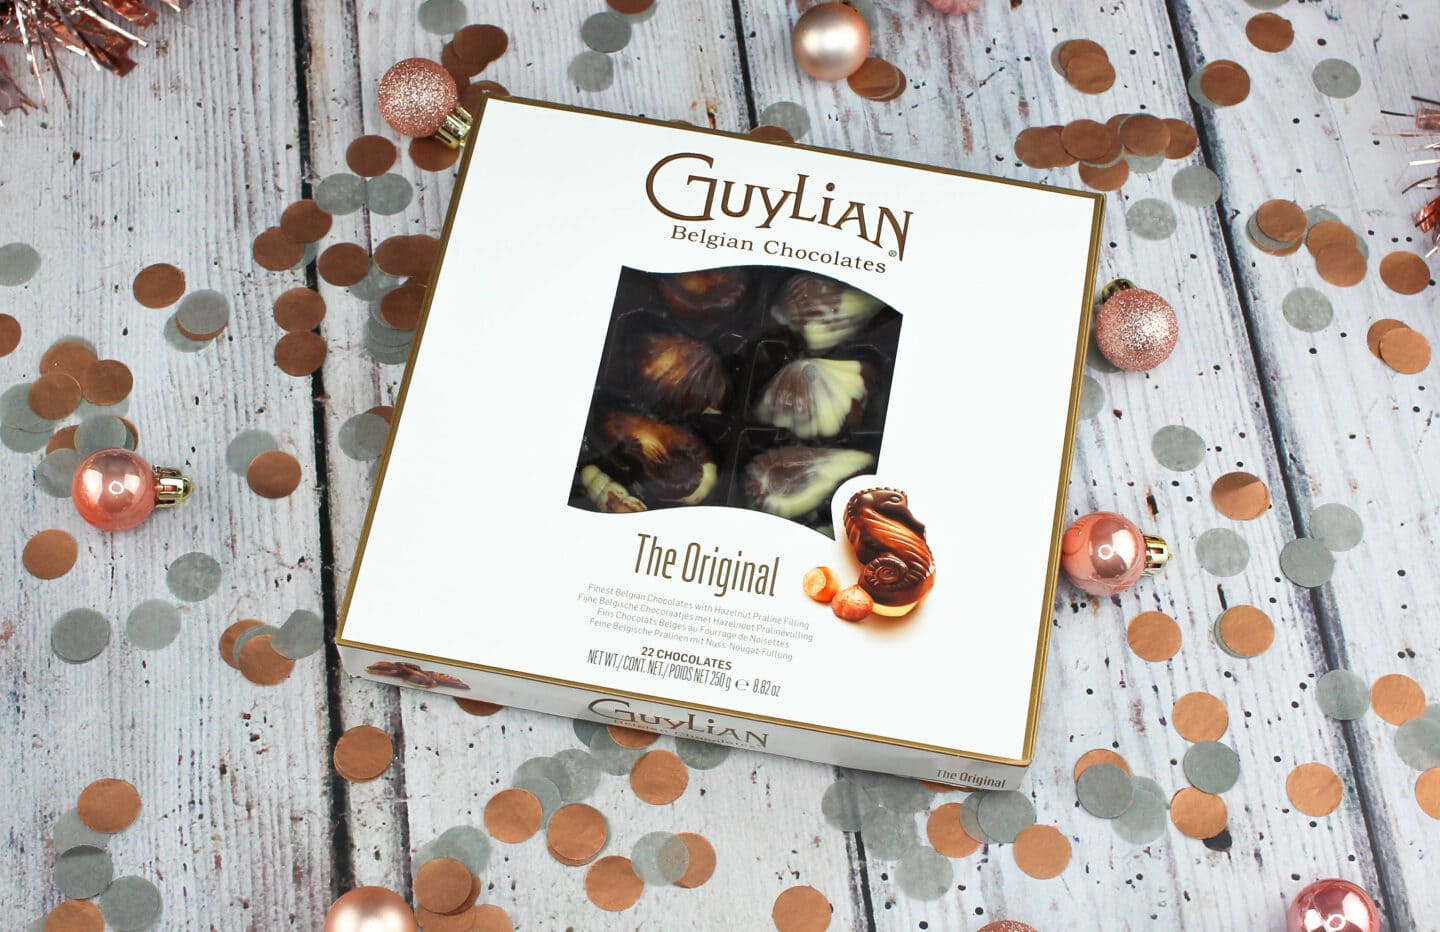 Guylian chocolates